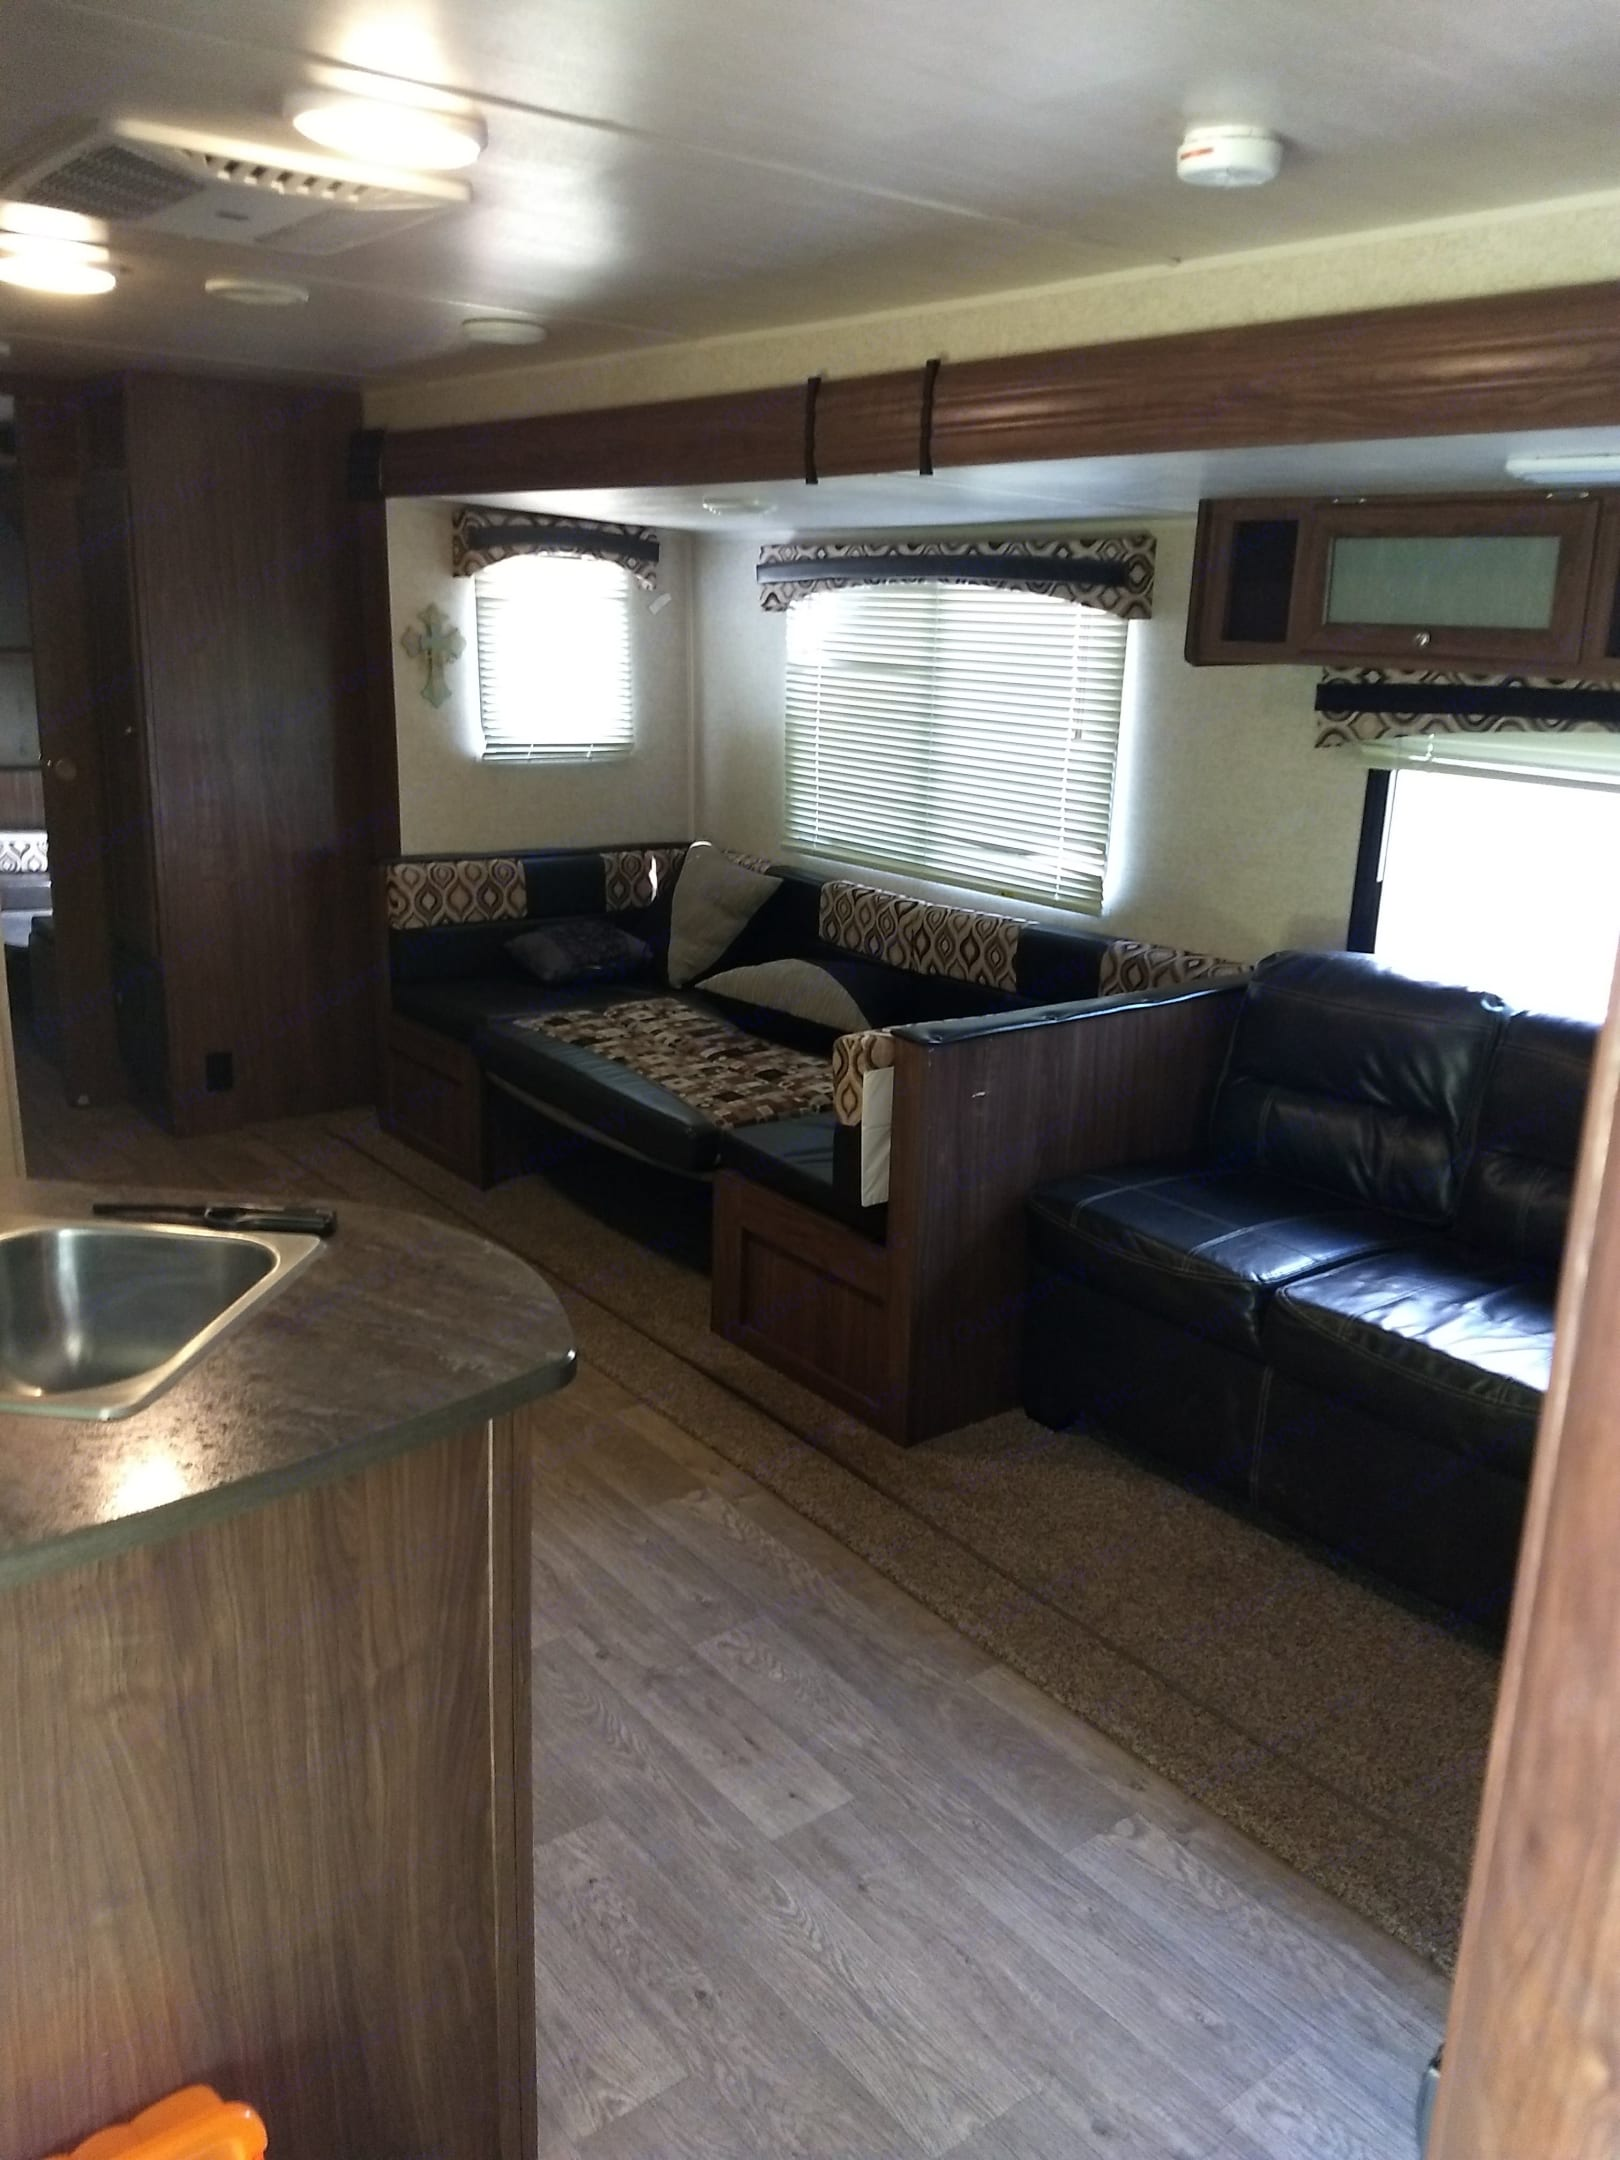 Living room slide out has two chairs and a storage underneath that makes out into a bed the table also makes into a bed. prowler Lynx lx30 2018